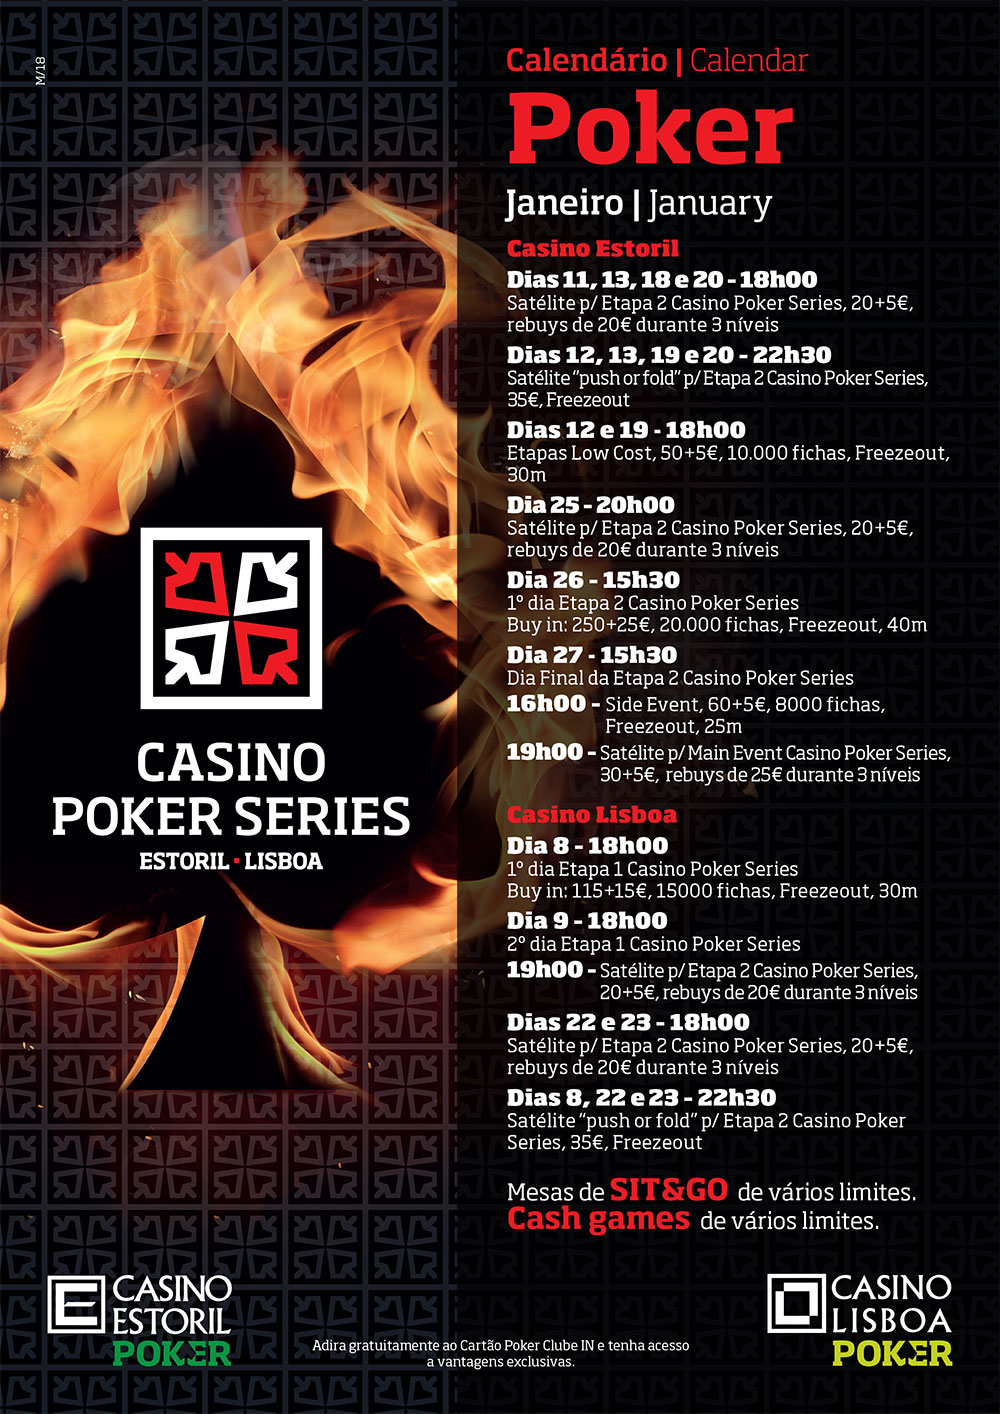 Casino de estoril poker money laundering puerto rico casino